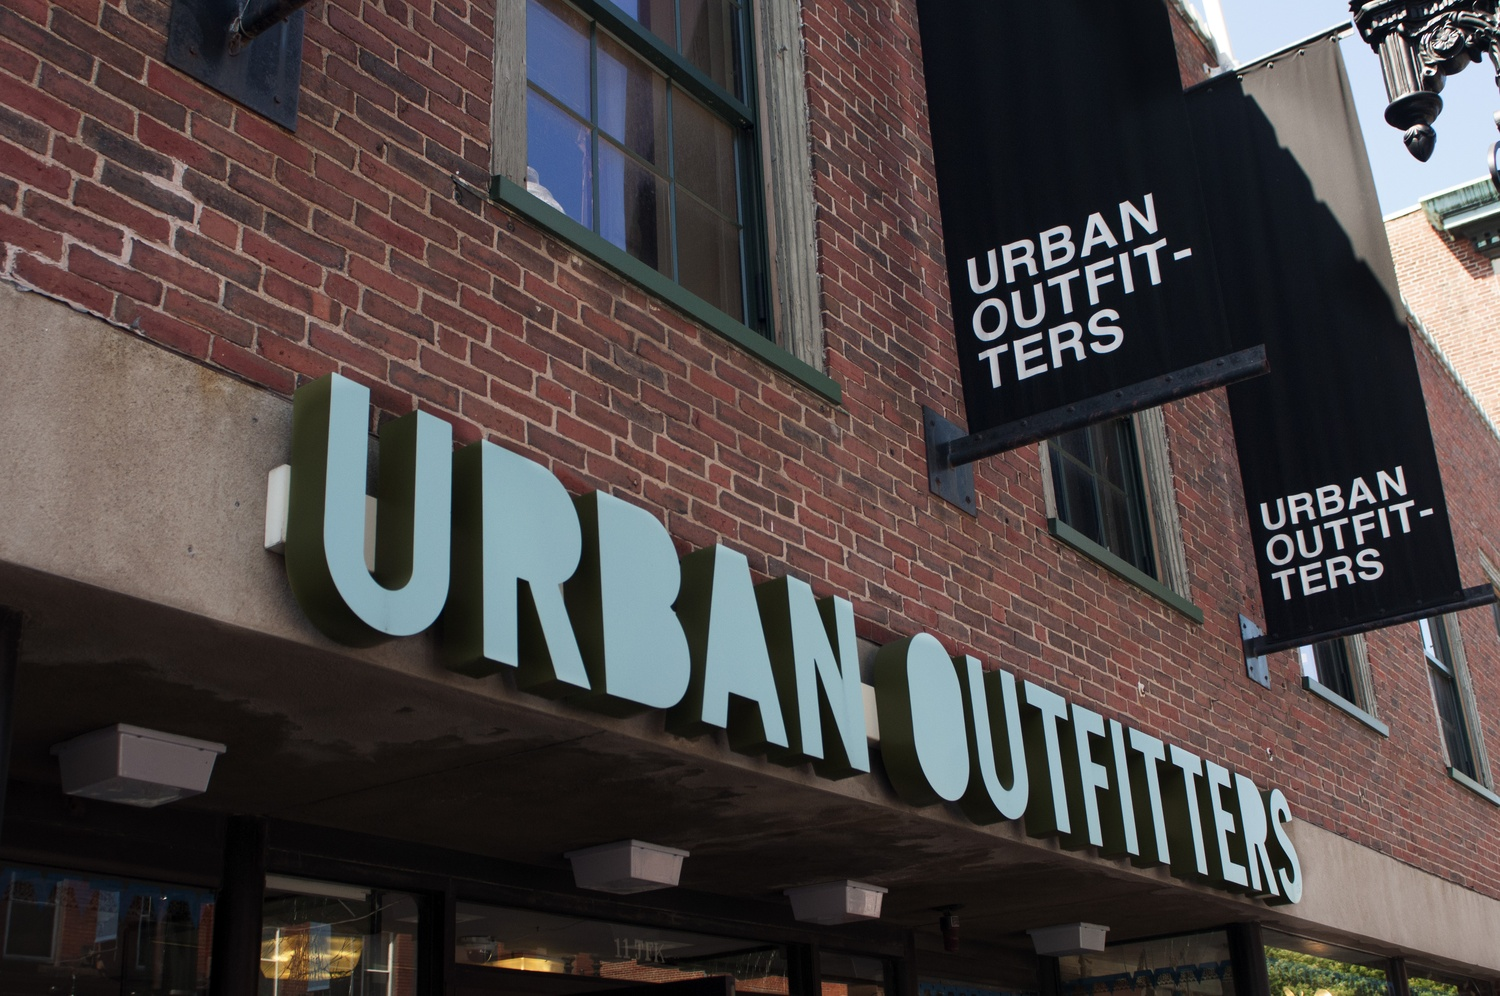 Current plans proposed by Regency Centers Corporation would destroy the building that once housed Urban Outfitters and Sweet Bakery.